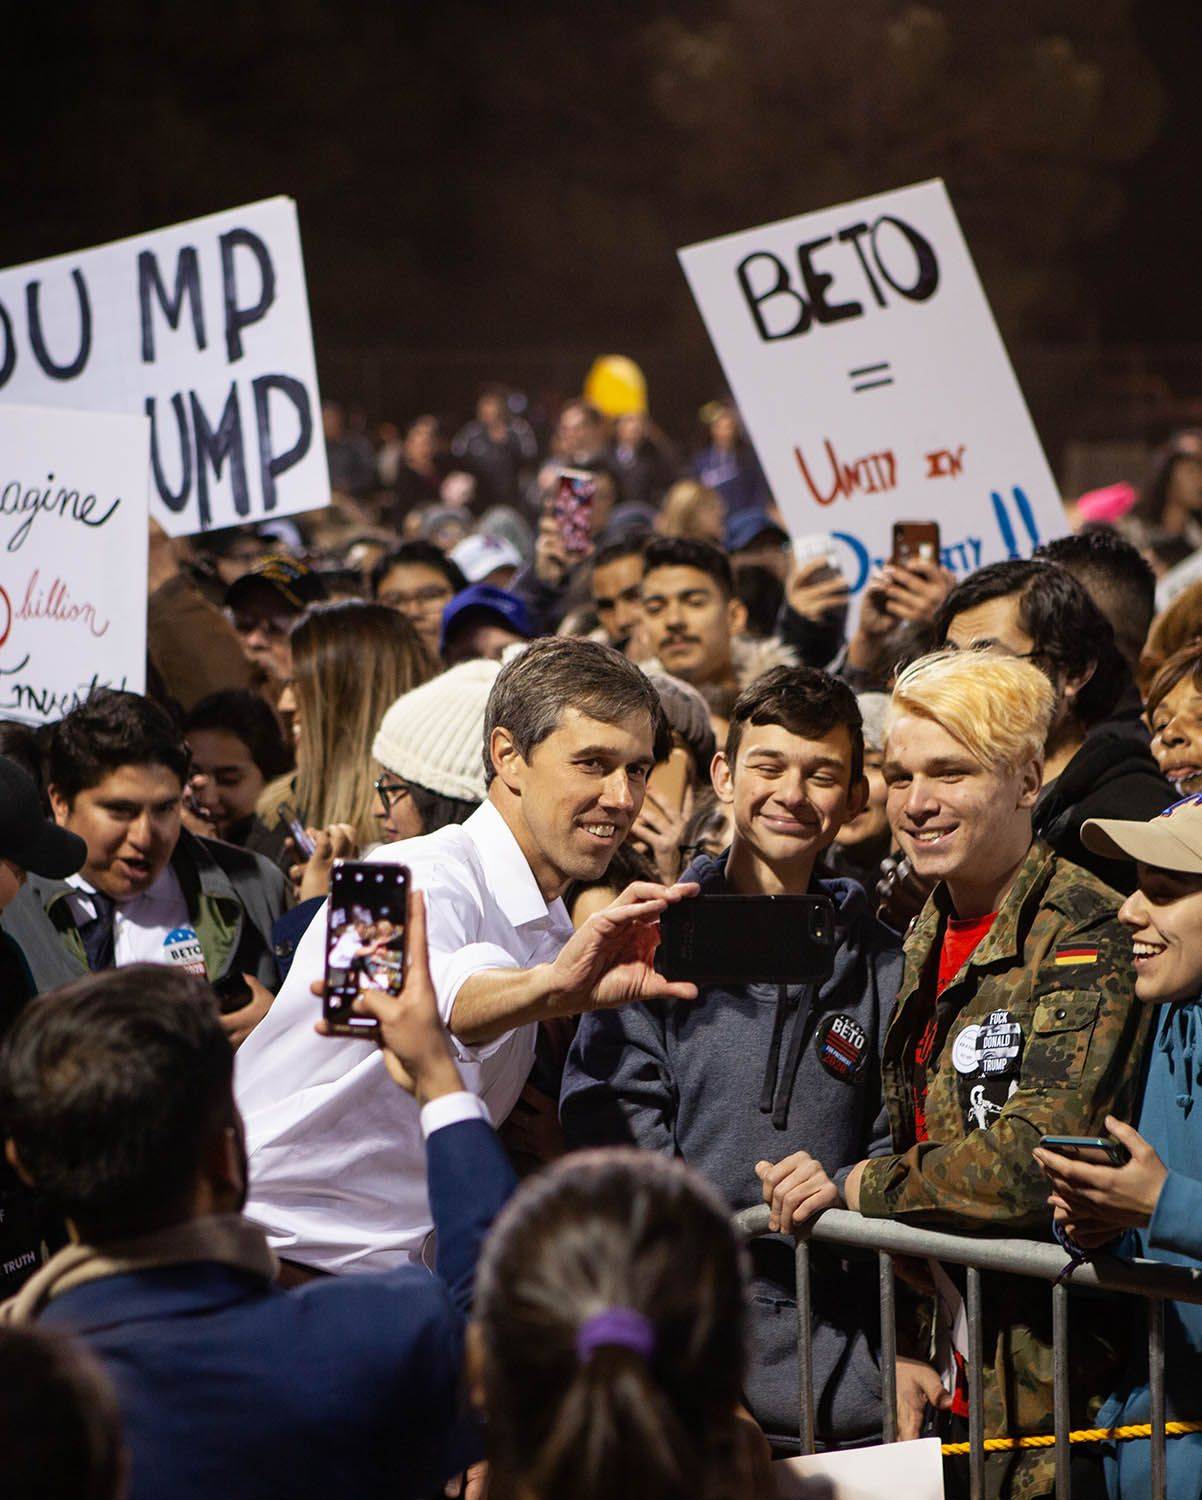 Beto O'Rourke takes selfies with well-wishers at a rally to protest a U.S./Mexico border wall being pushed by President Donald Trump February 11, 2019 in El Paso, Texas.